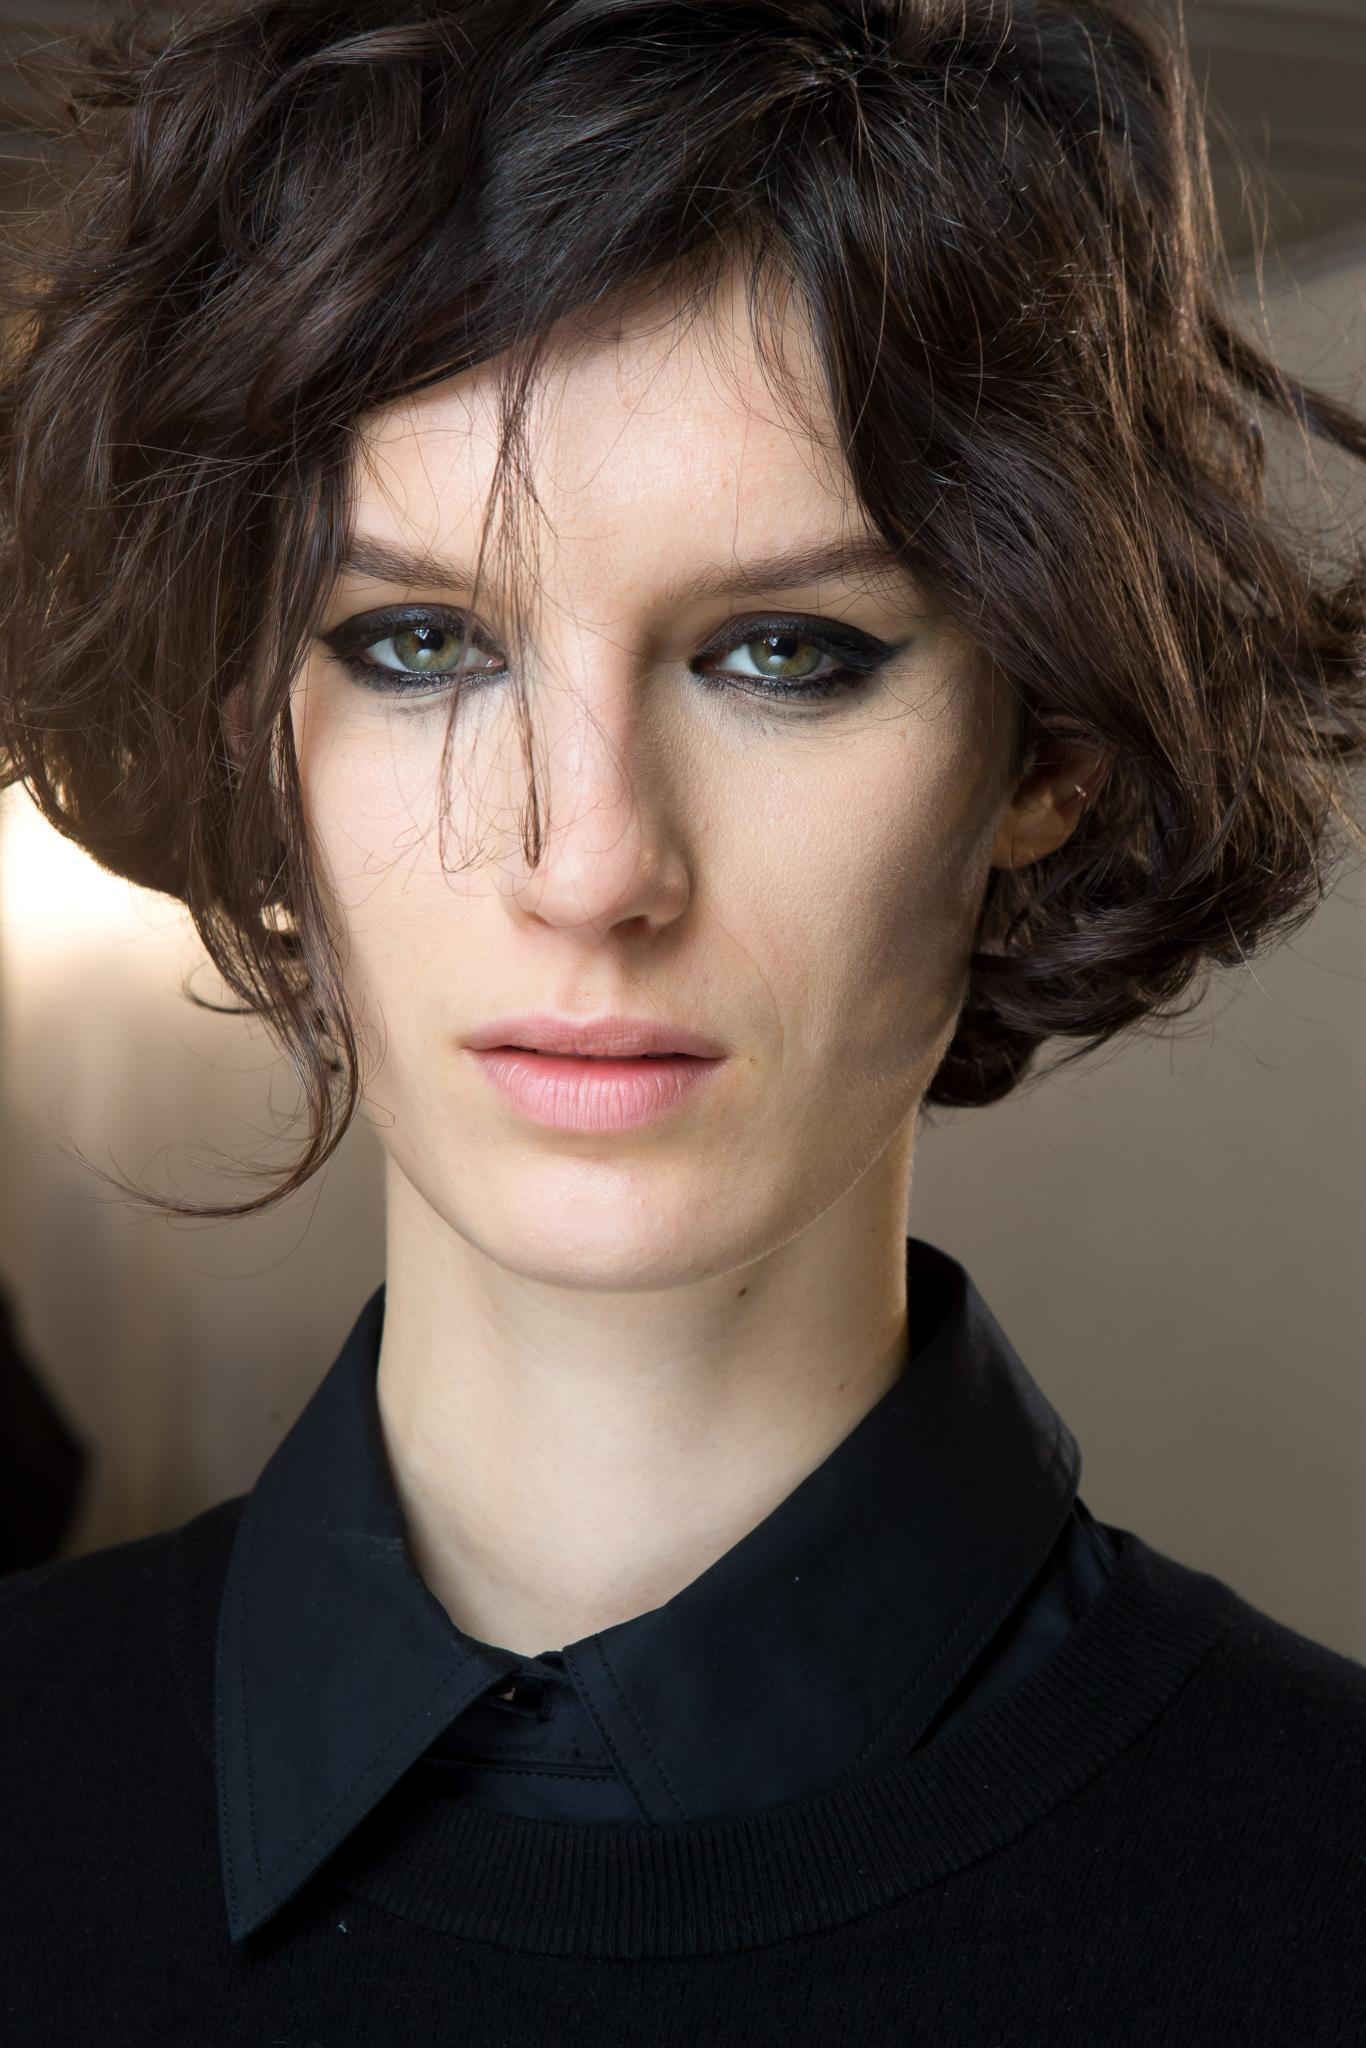 short tousled haircuts tousled hair get the runway look on any hair type 4770 | short tousled hair wavy crop